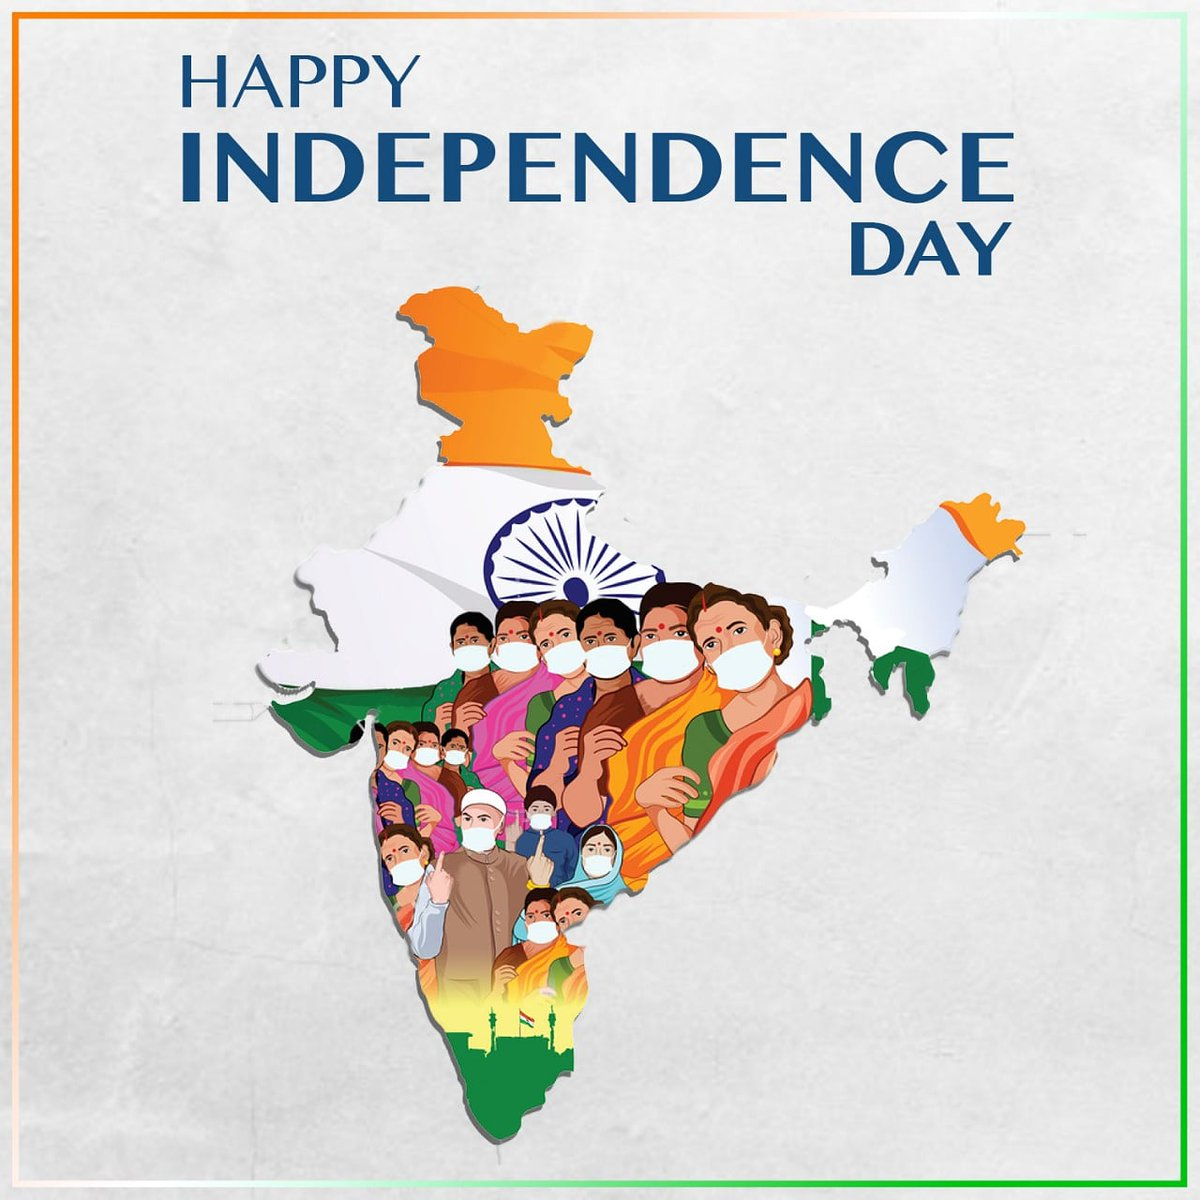 Wishing our fellow citizens a #HappyIndependenceDay.  @Shankar_Live @EhsaanNoorani @loy_mendonsa  #IndependenceDay2020